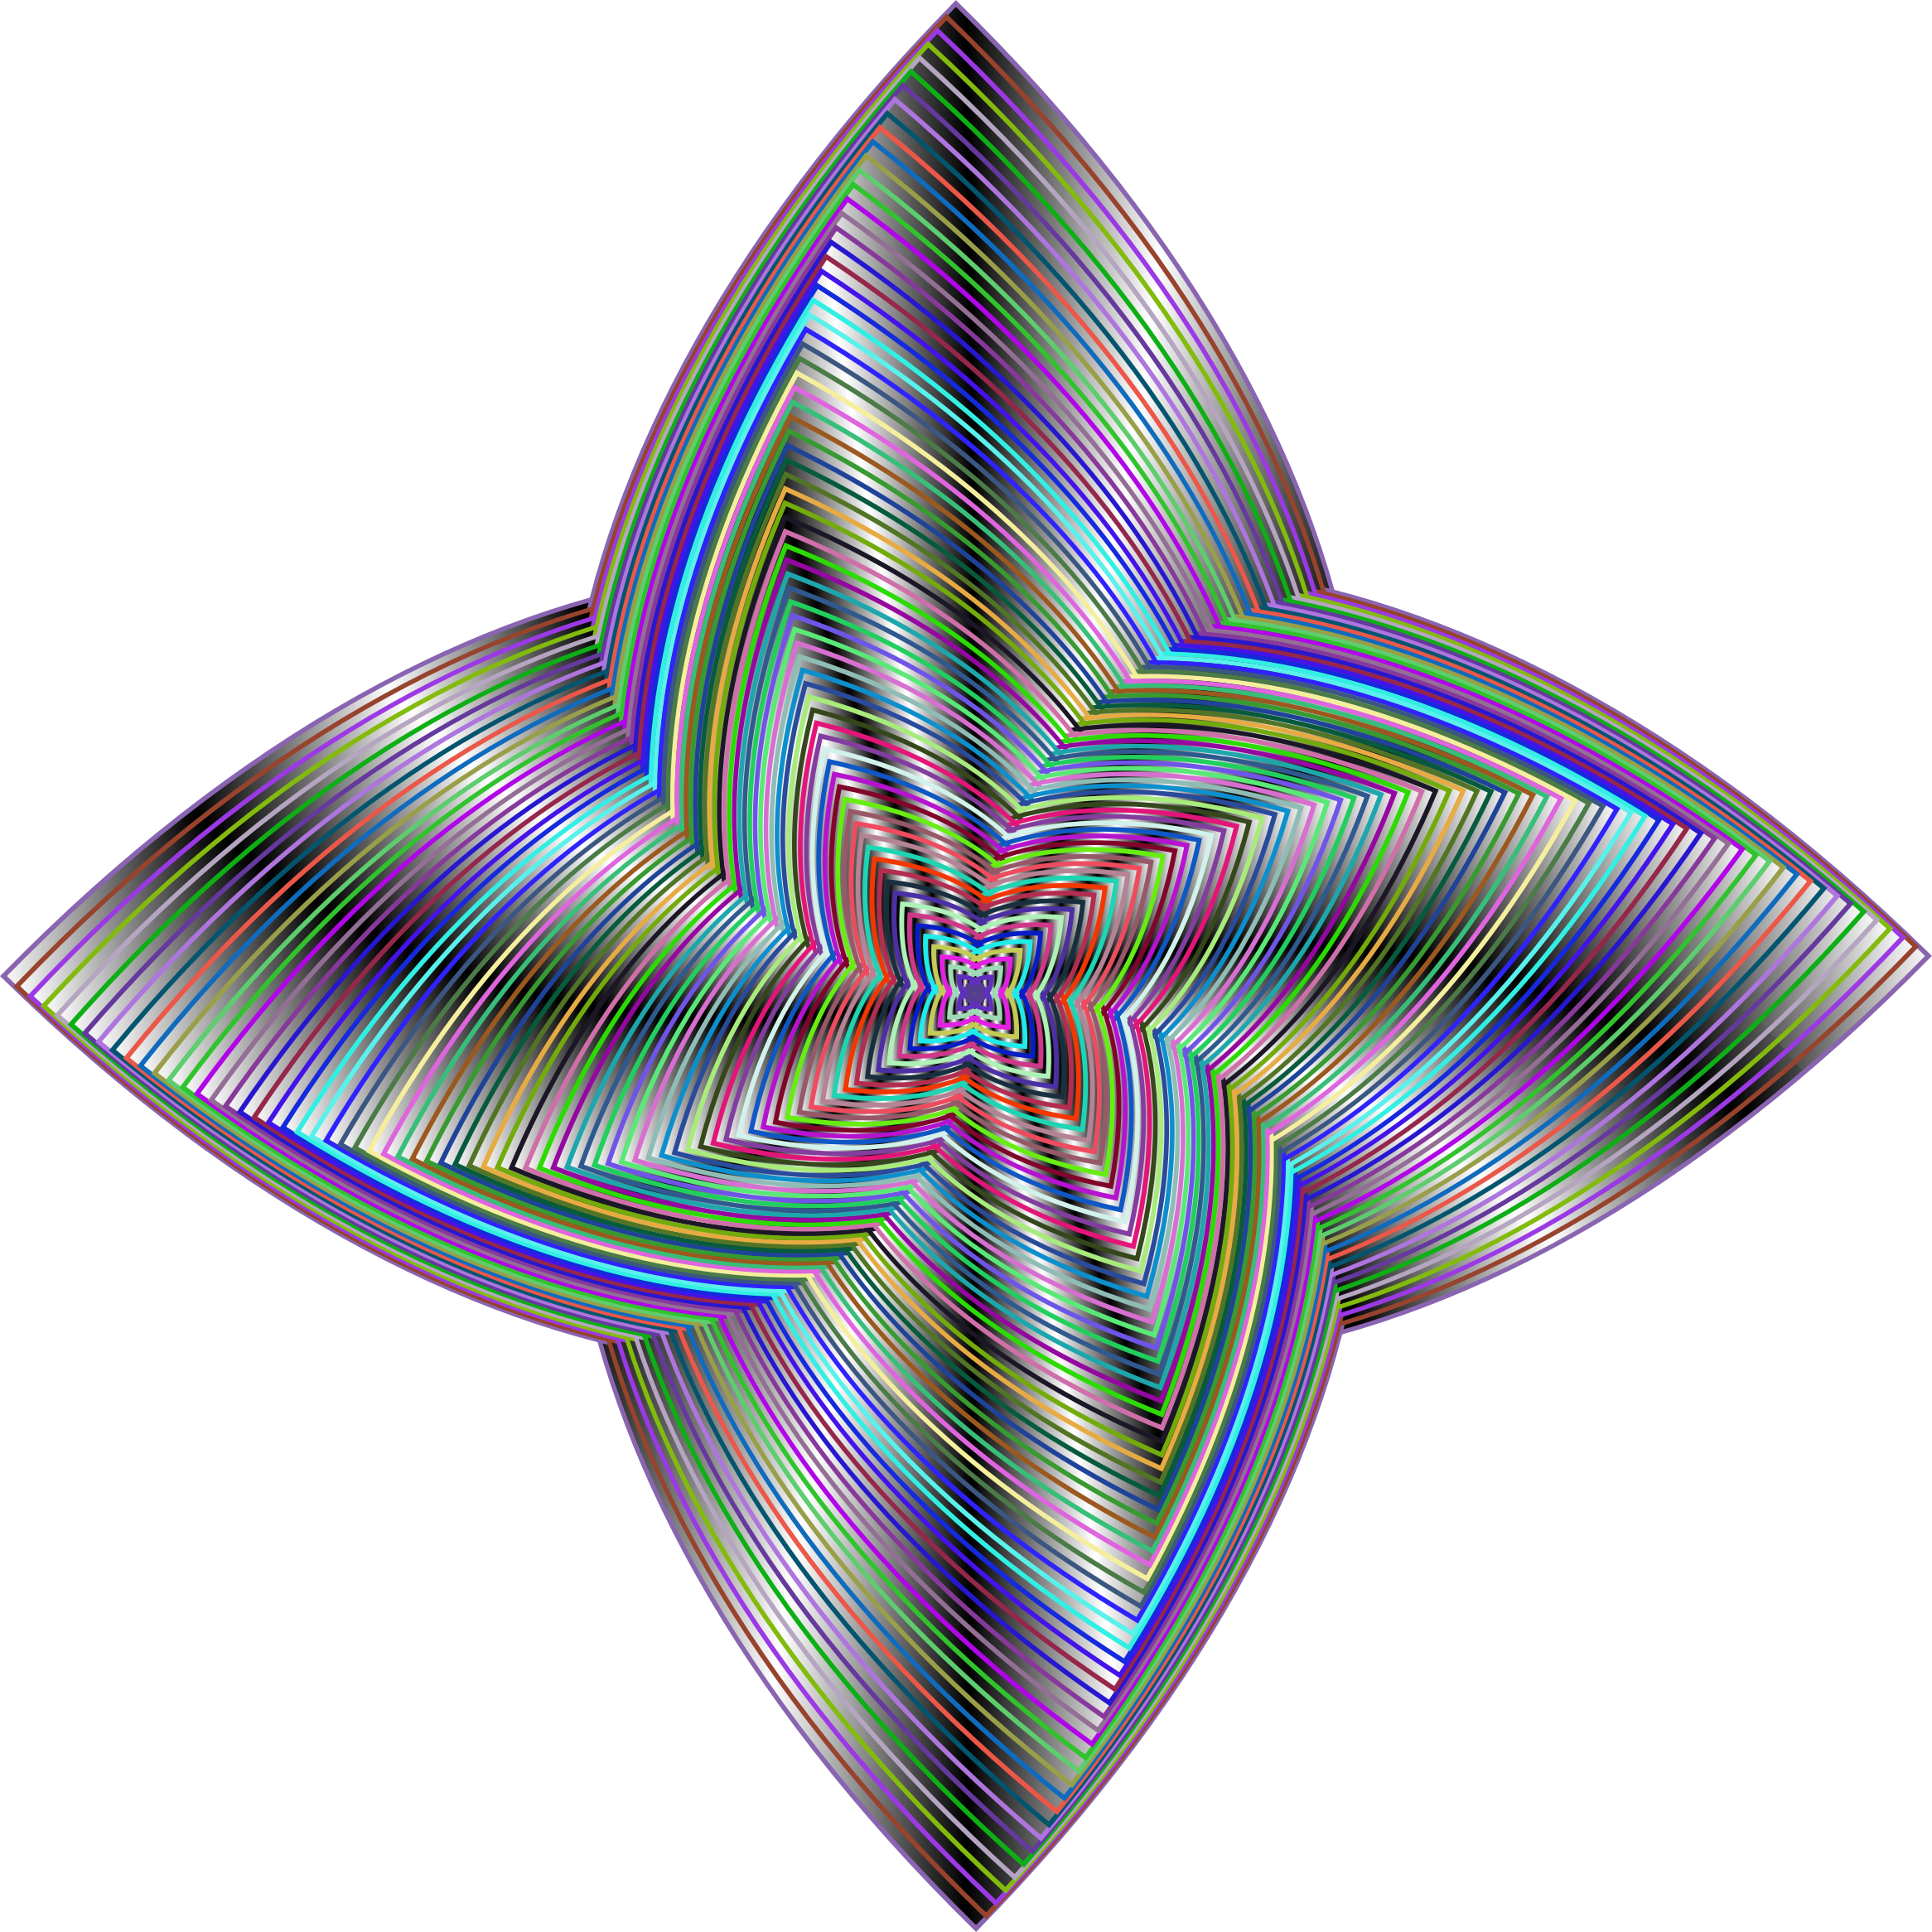 Prismatic Quadrilateral Line Art Variation 4 by GDJ